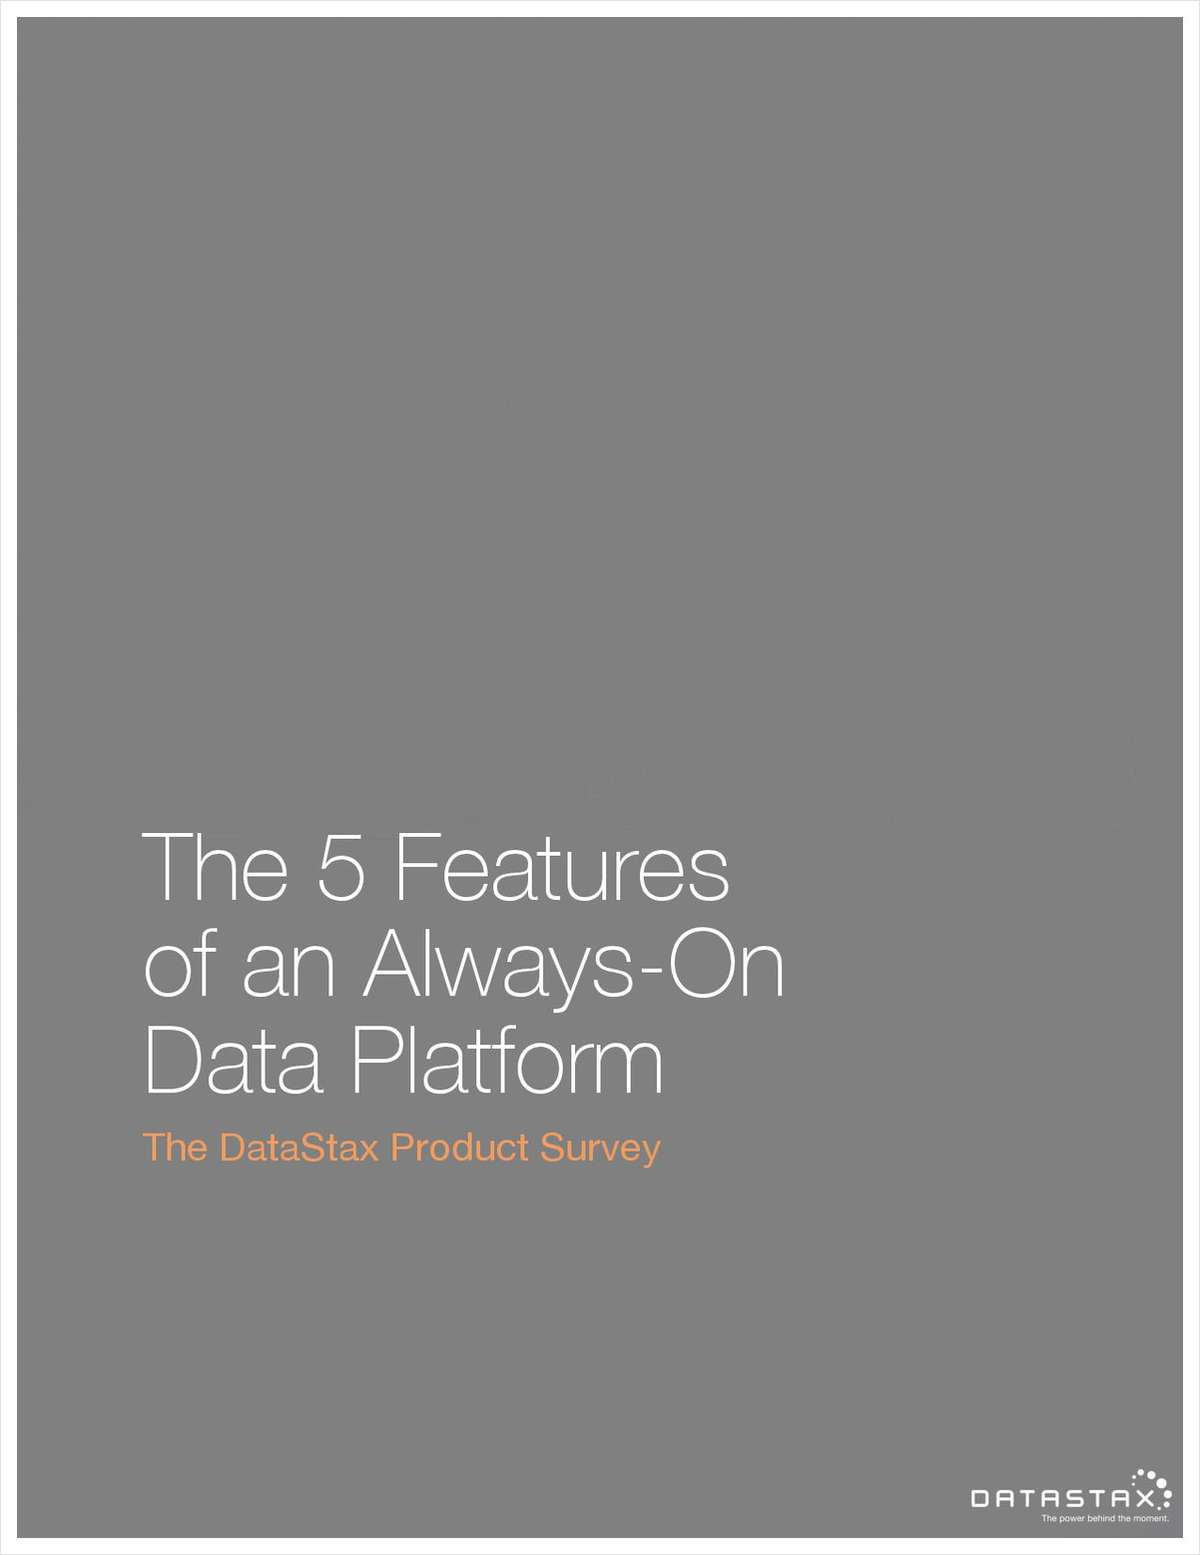 The 5 Features of an Always-On Data Platform